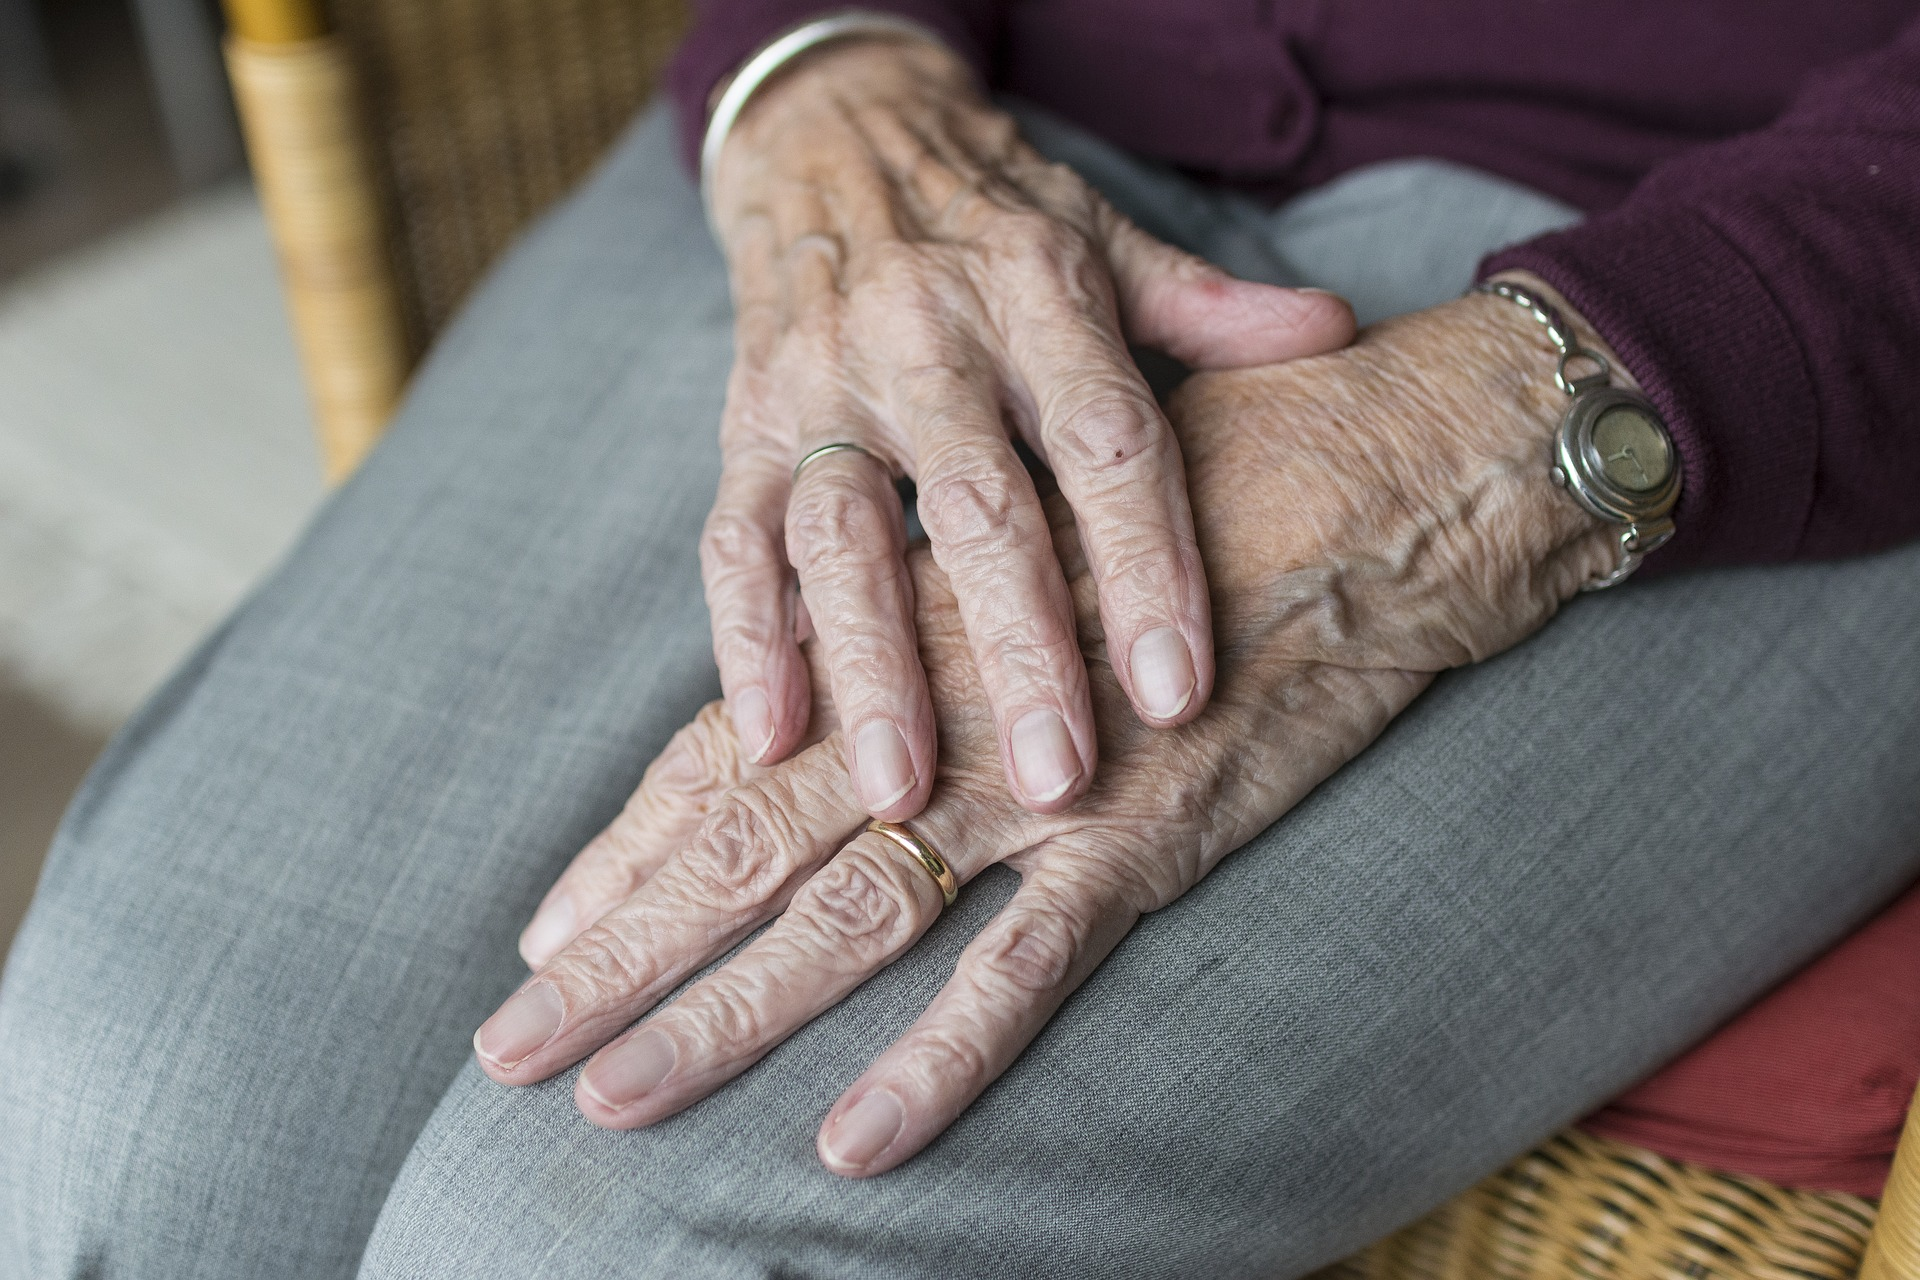 An older lady's hands folded into her lap